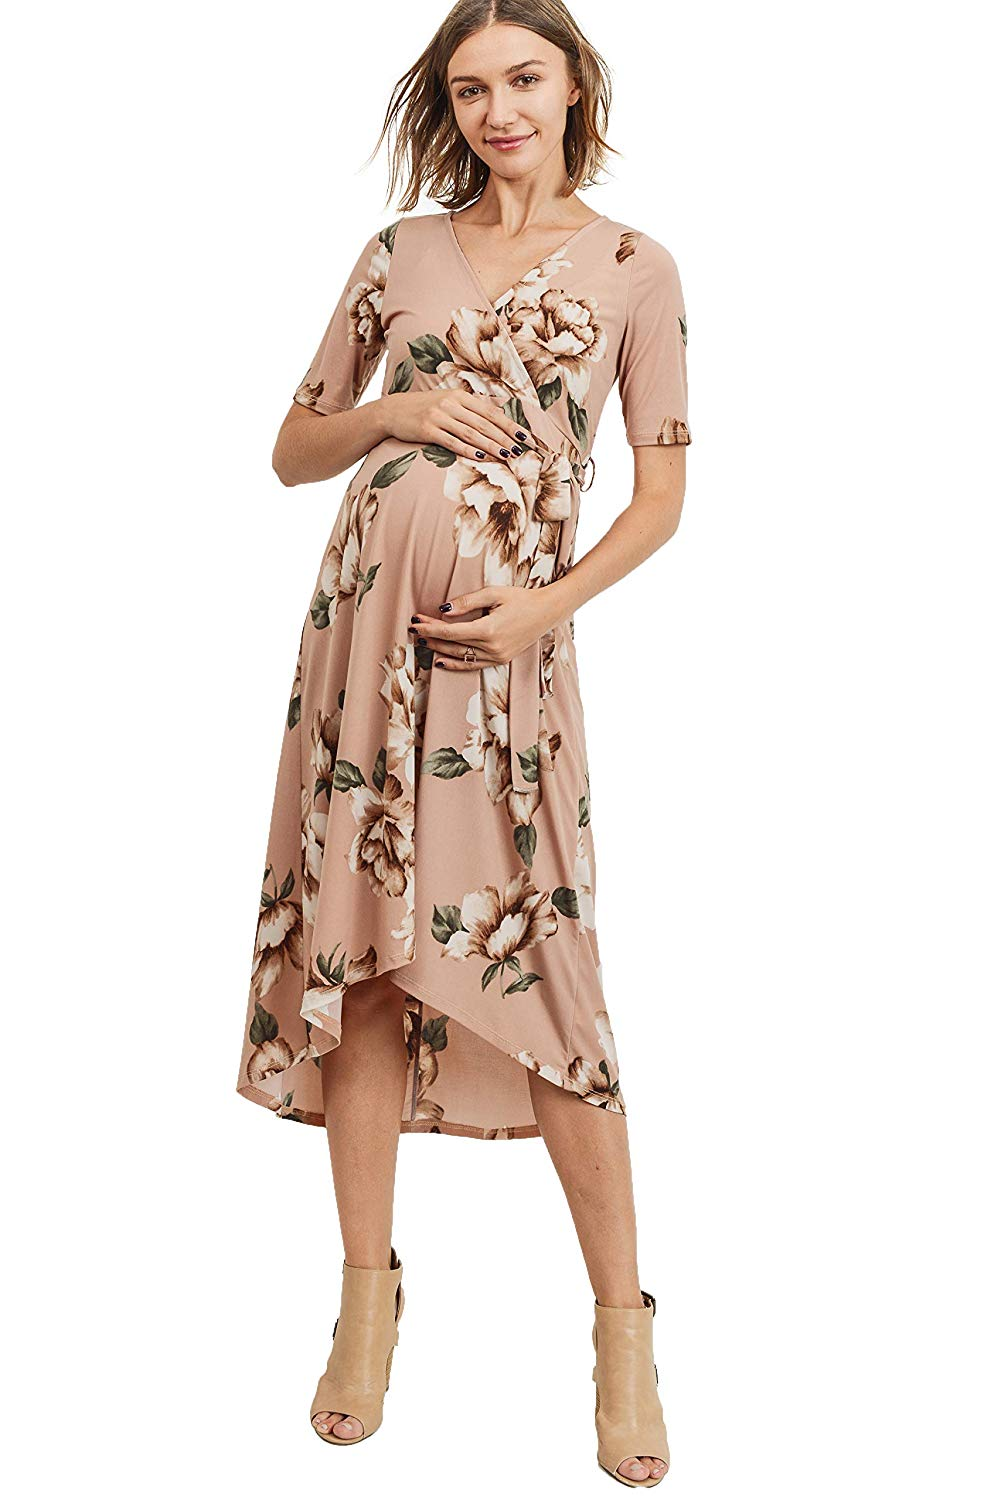 Floral Wrap Maternity Dress with Waist Belt - Mommylicious